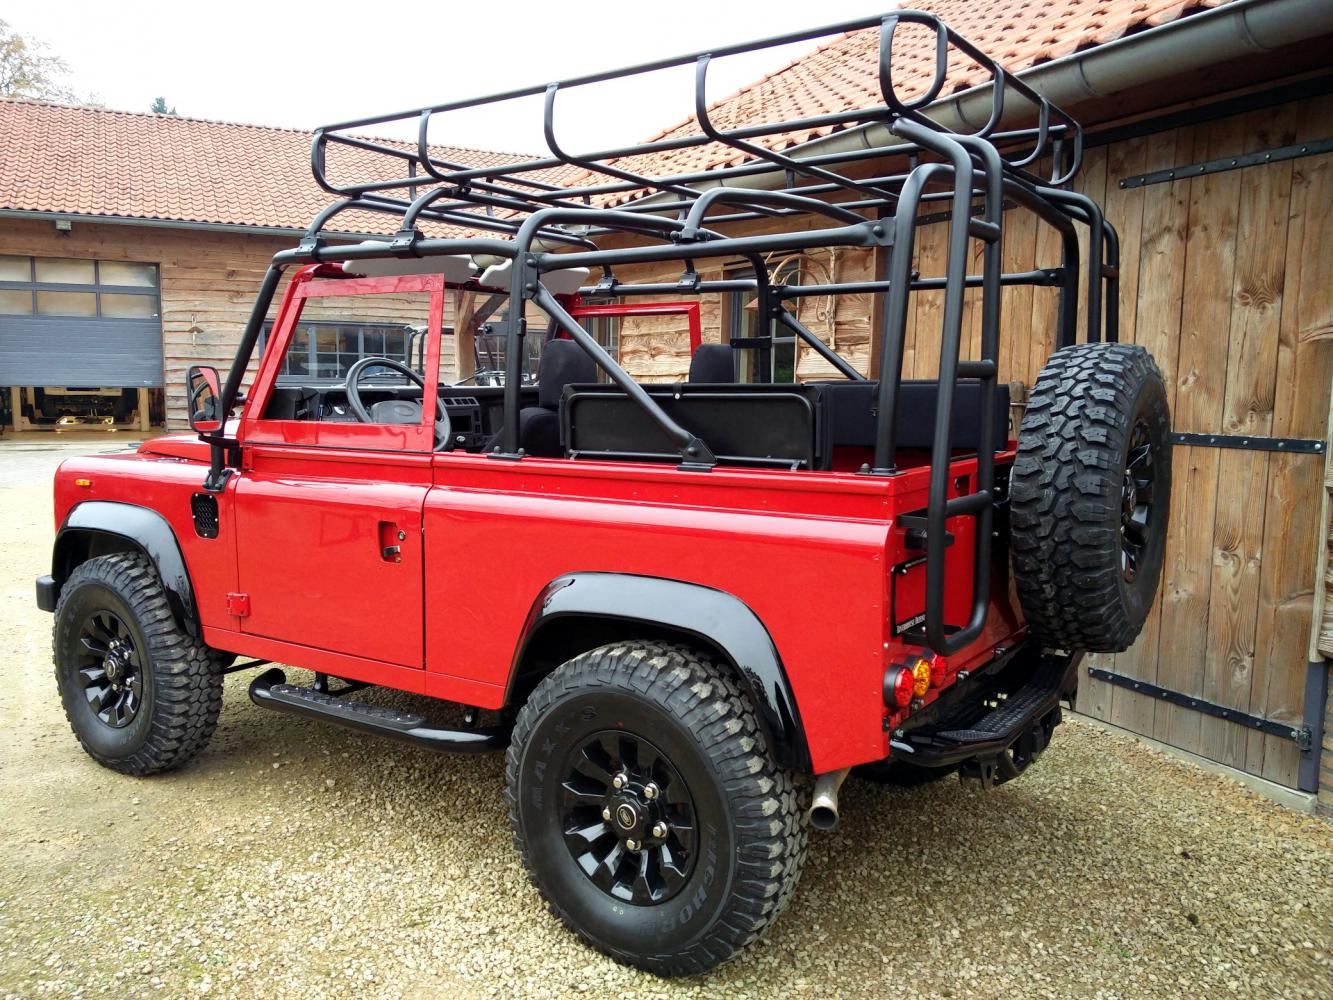 Click image for larger version  Name:1992 LR LHD Defender 90 Red 200 Tdi A day 15 left rear.jpg Views:62 Size:275.3 KB ID:323737